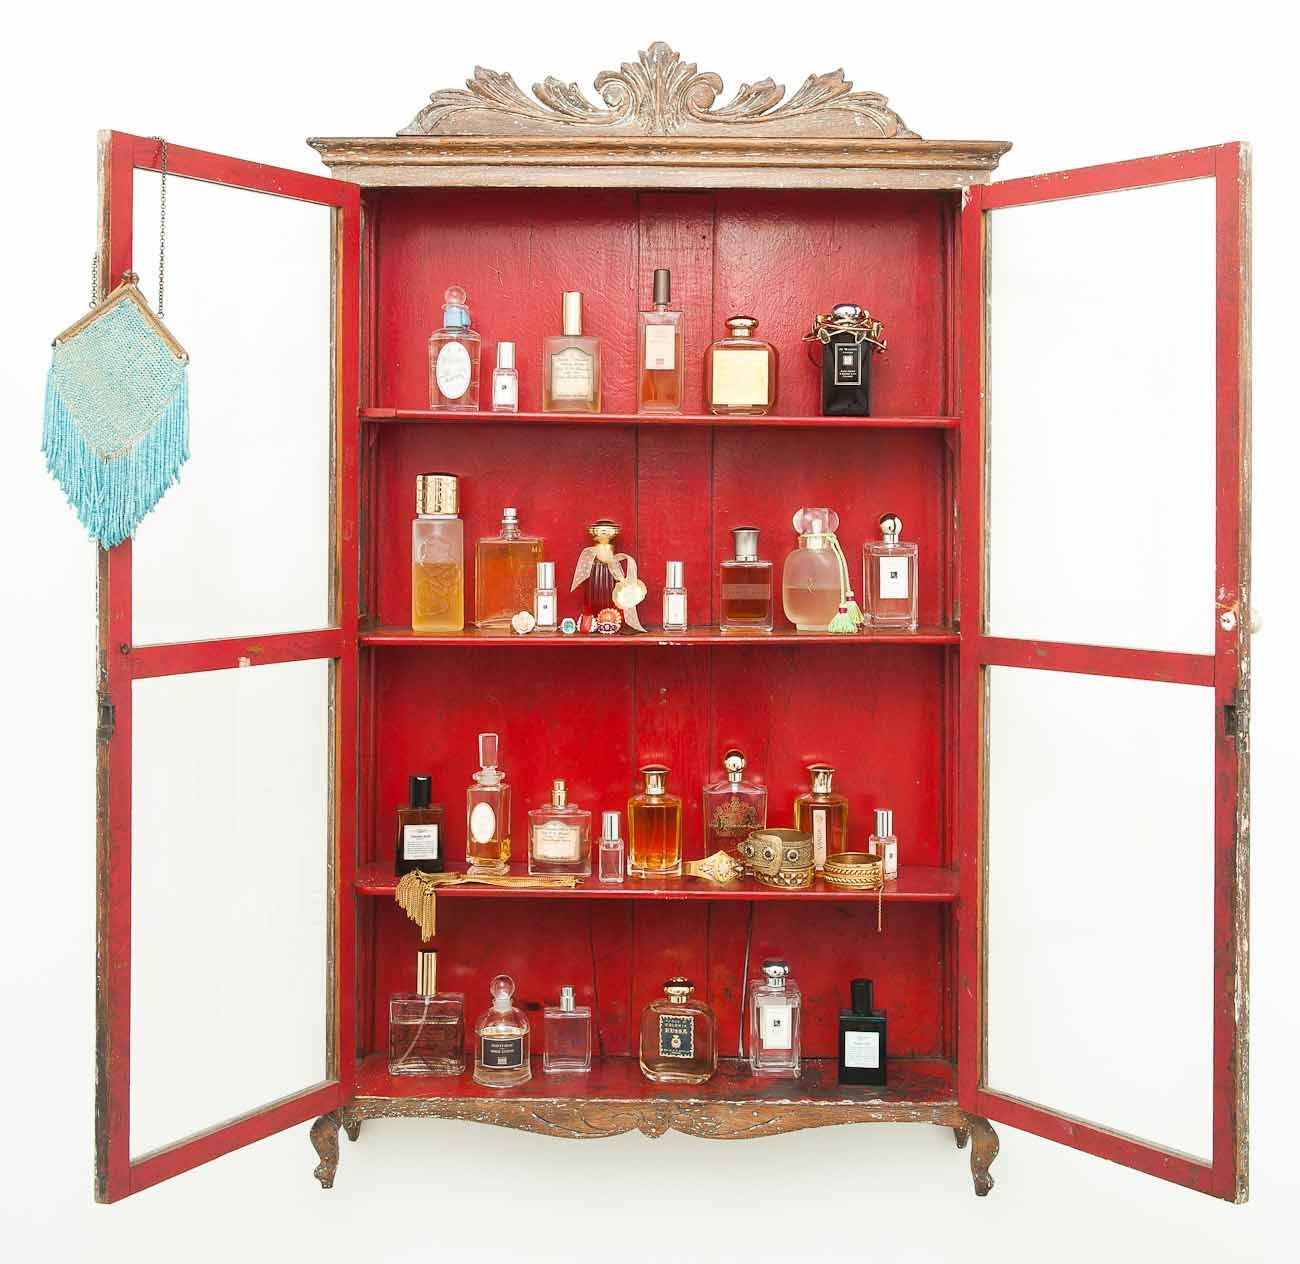 Merveilleux I Need One Of These Perfume Cabinet